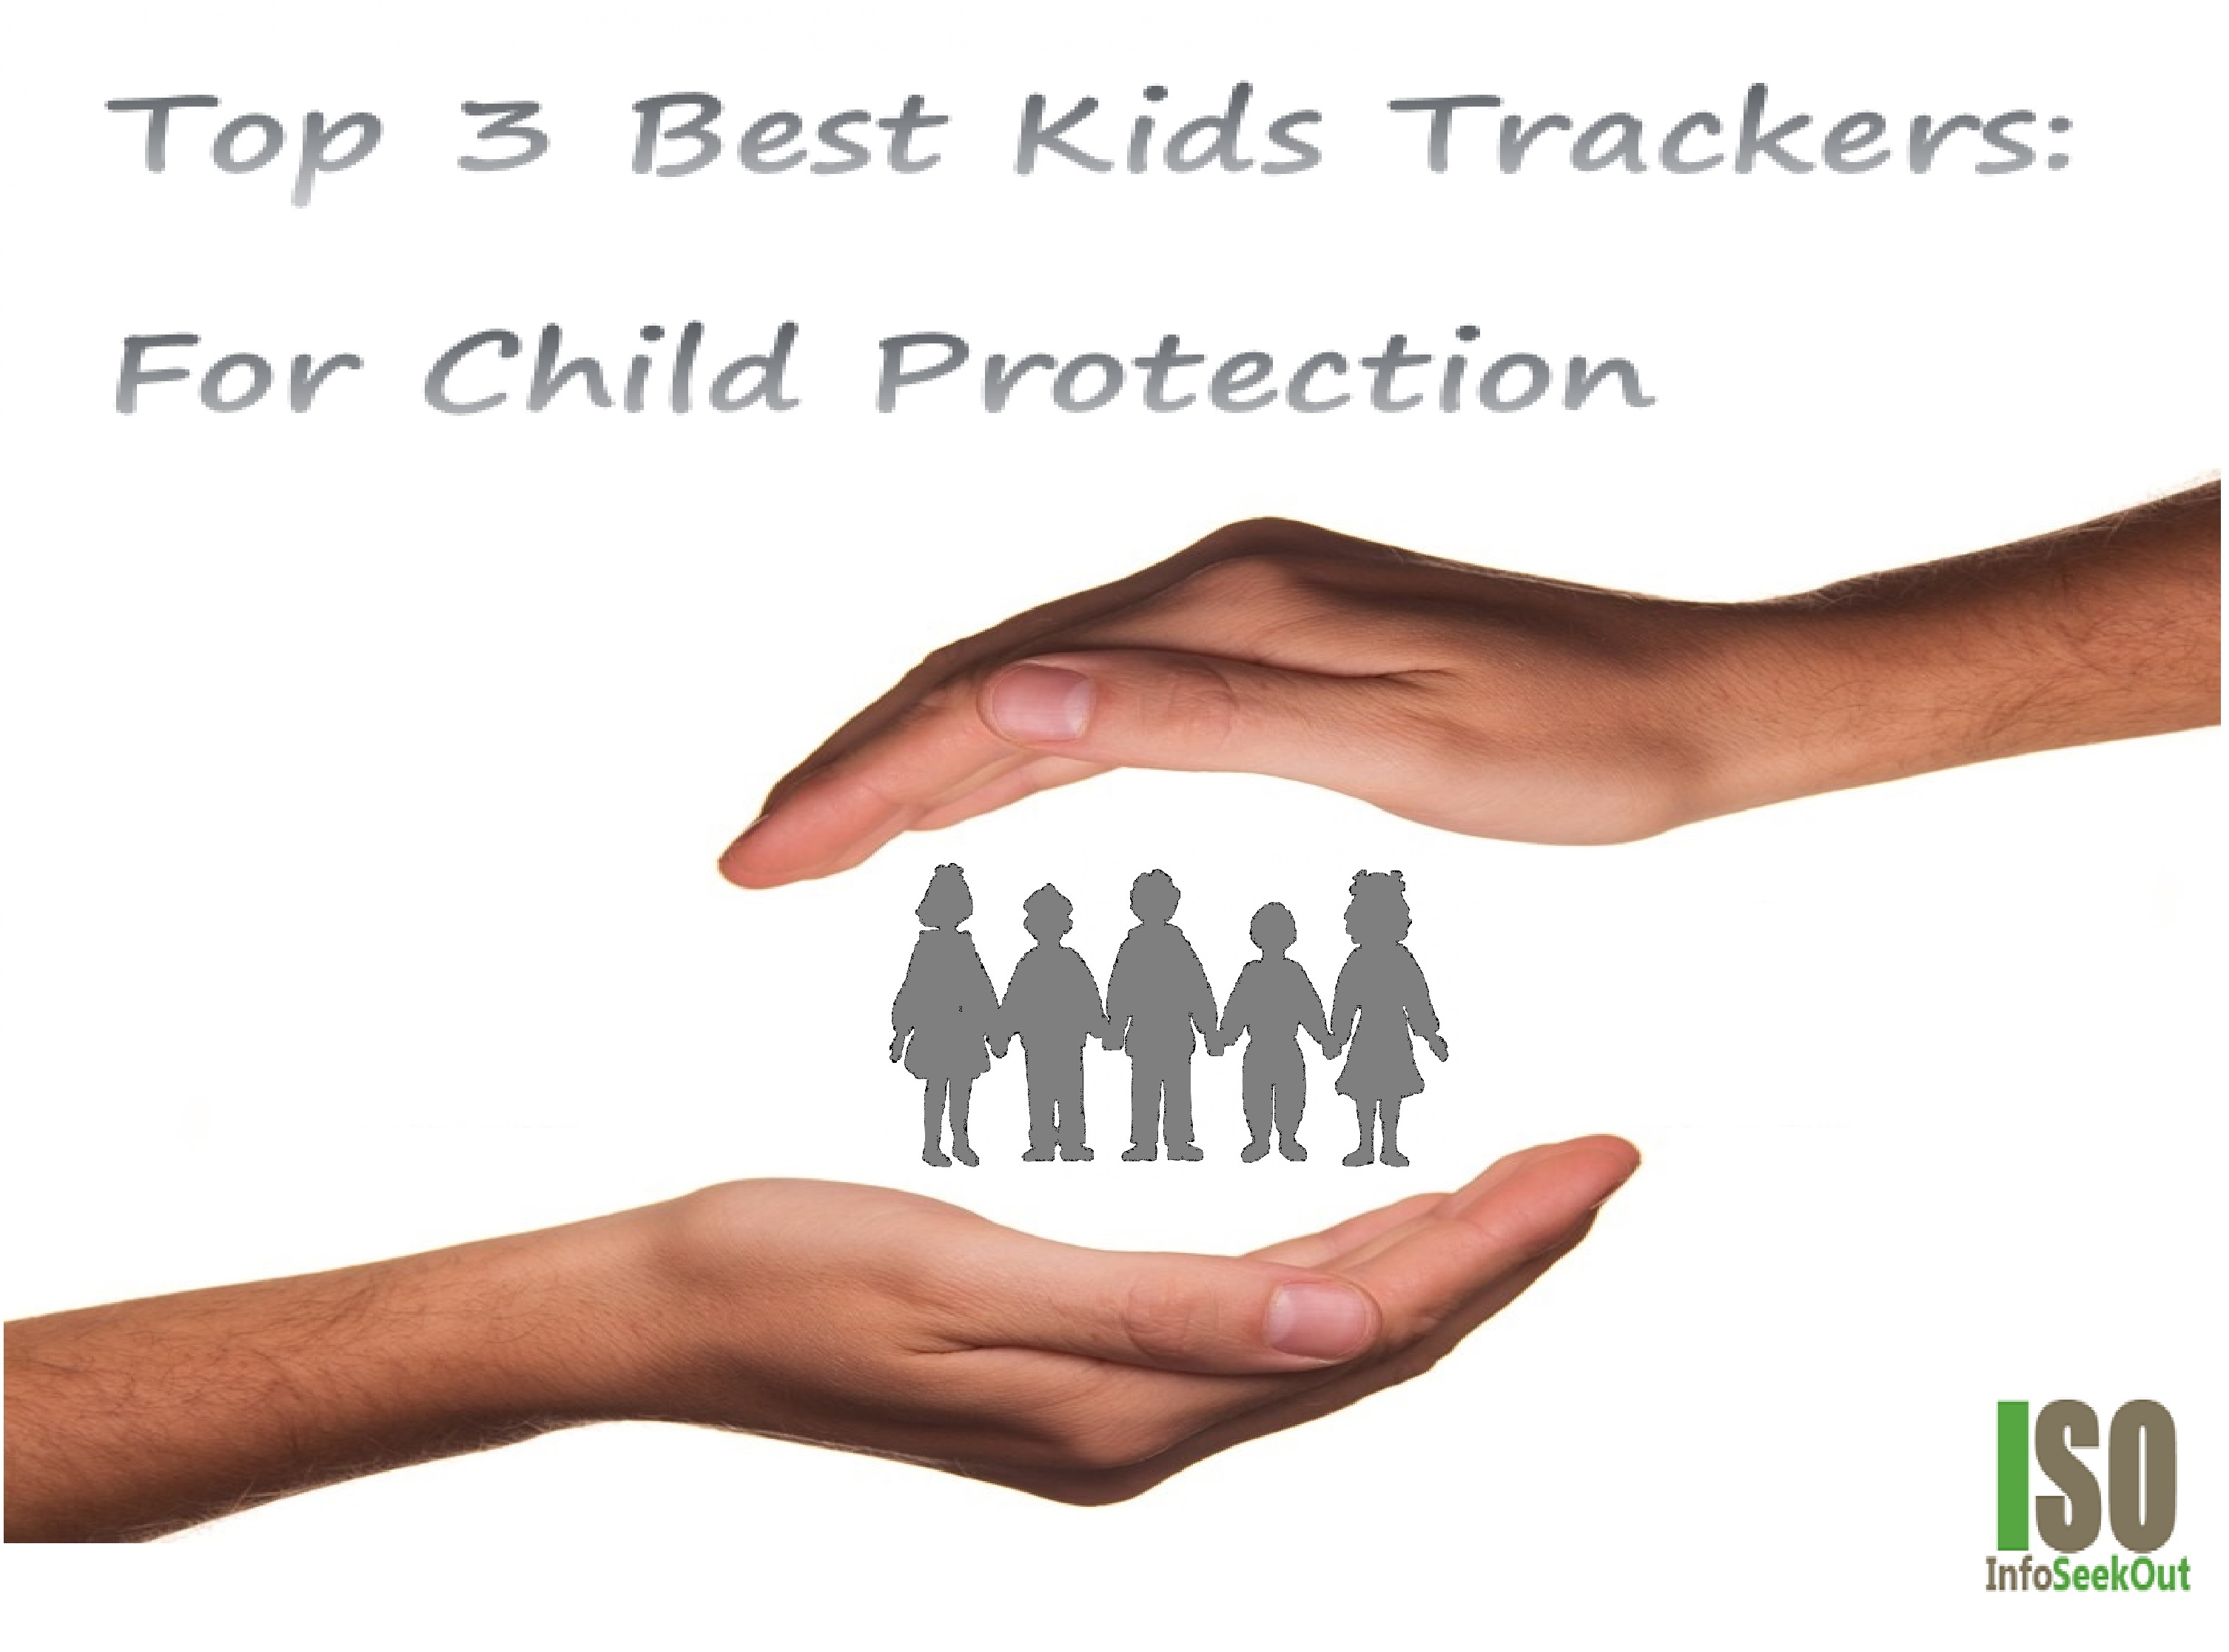 Top 3 Best Kids Trackers for Child Protection - InfoSeekOut